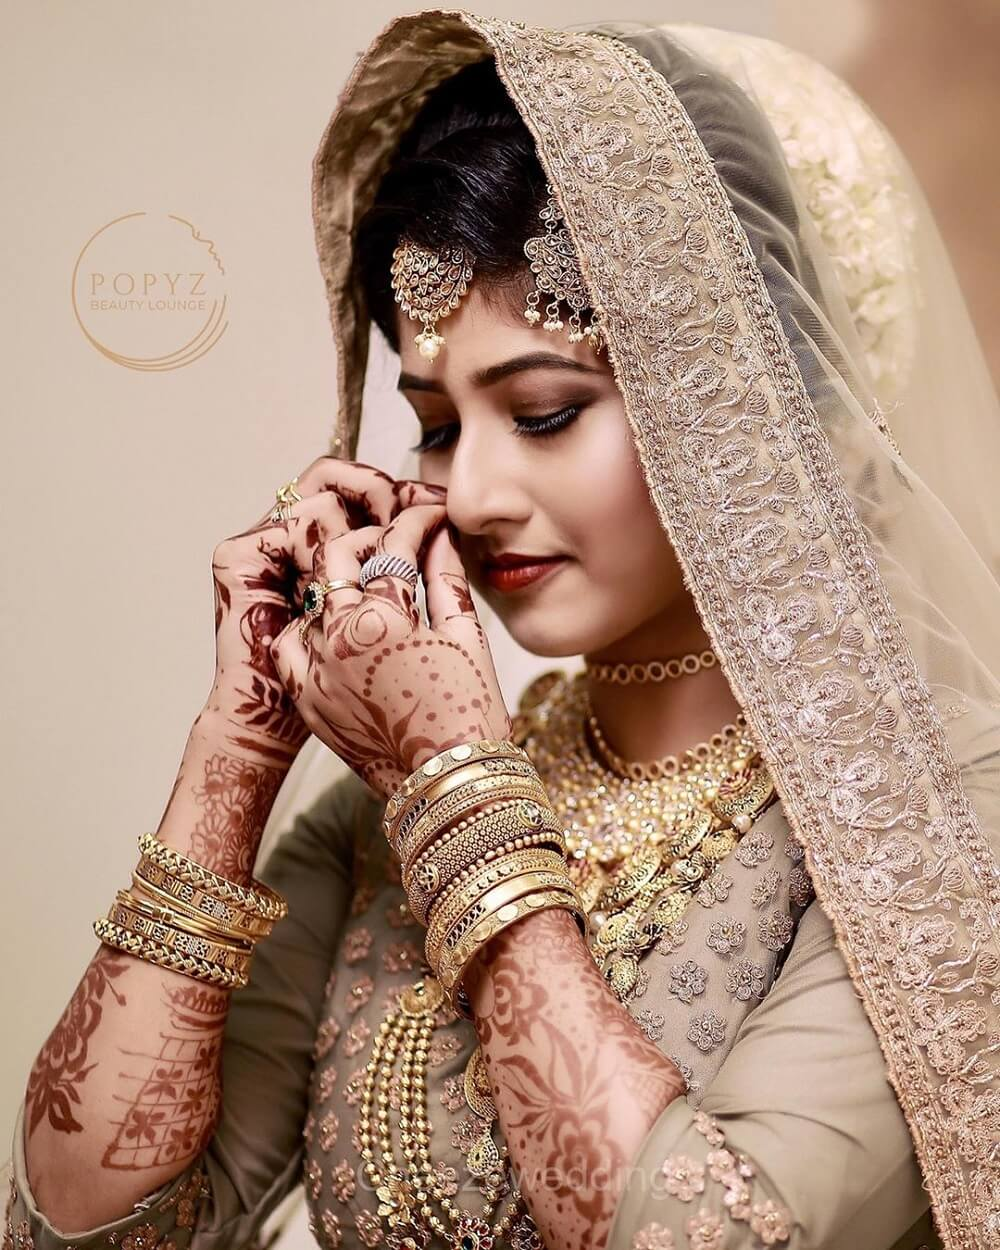 12 Scintillating Real Brides Adorning Their Smokey Eyes And Stealing Our Hearts Like A Pro